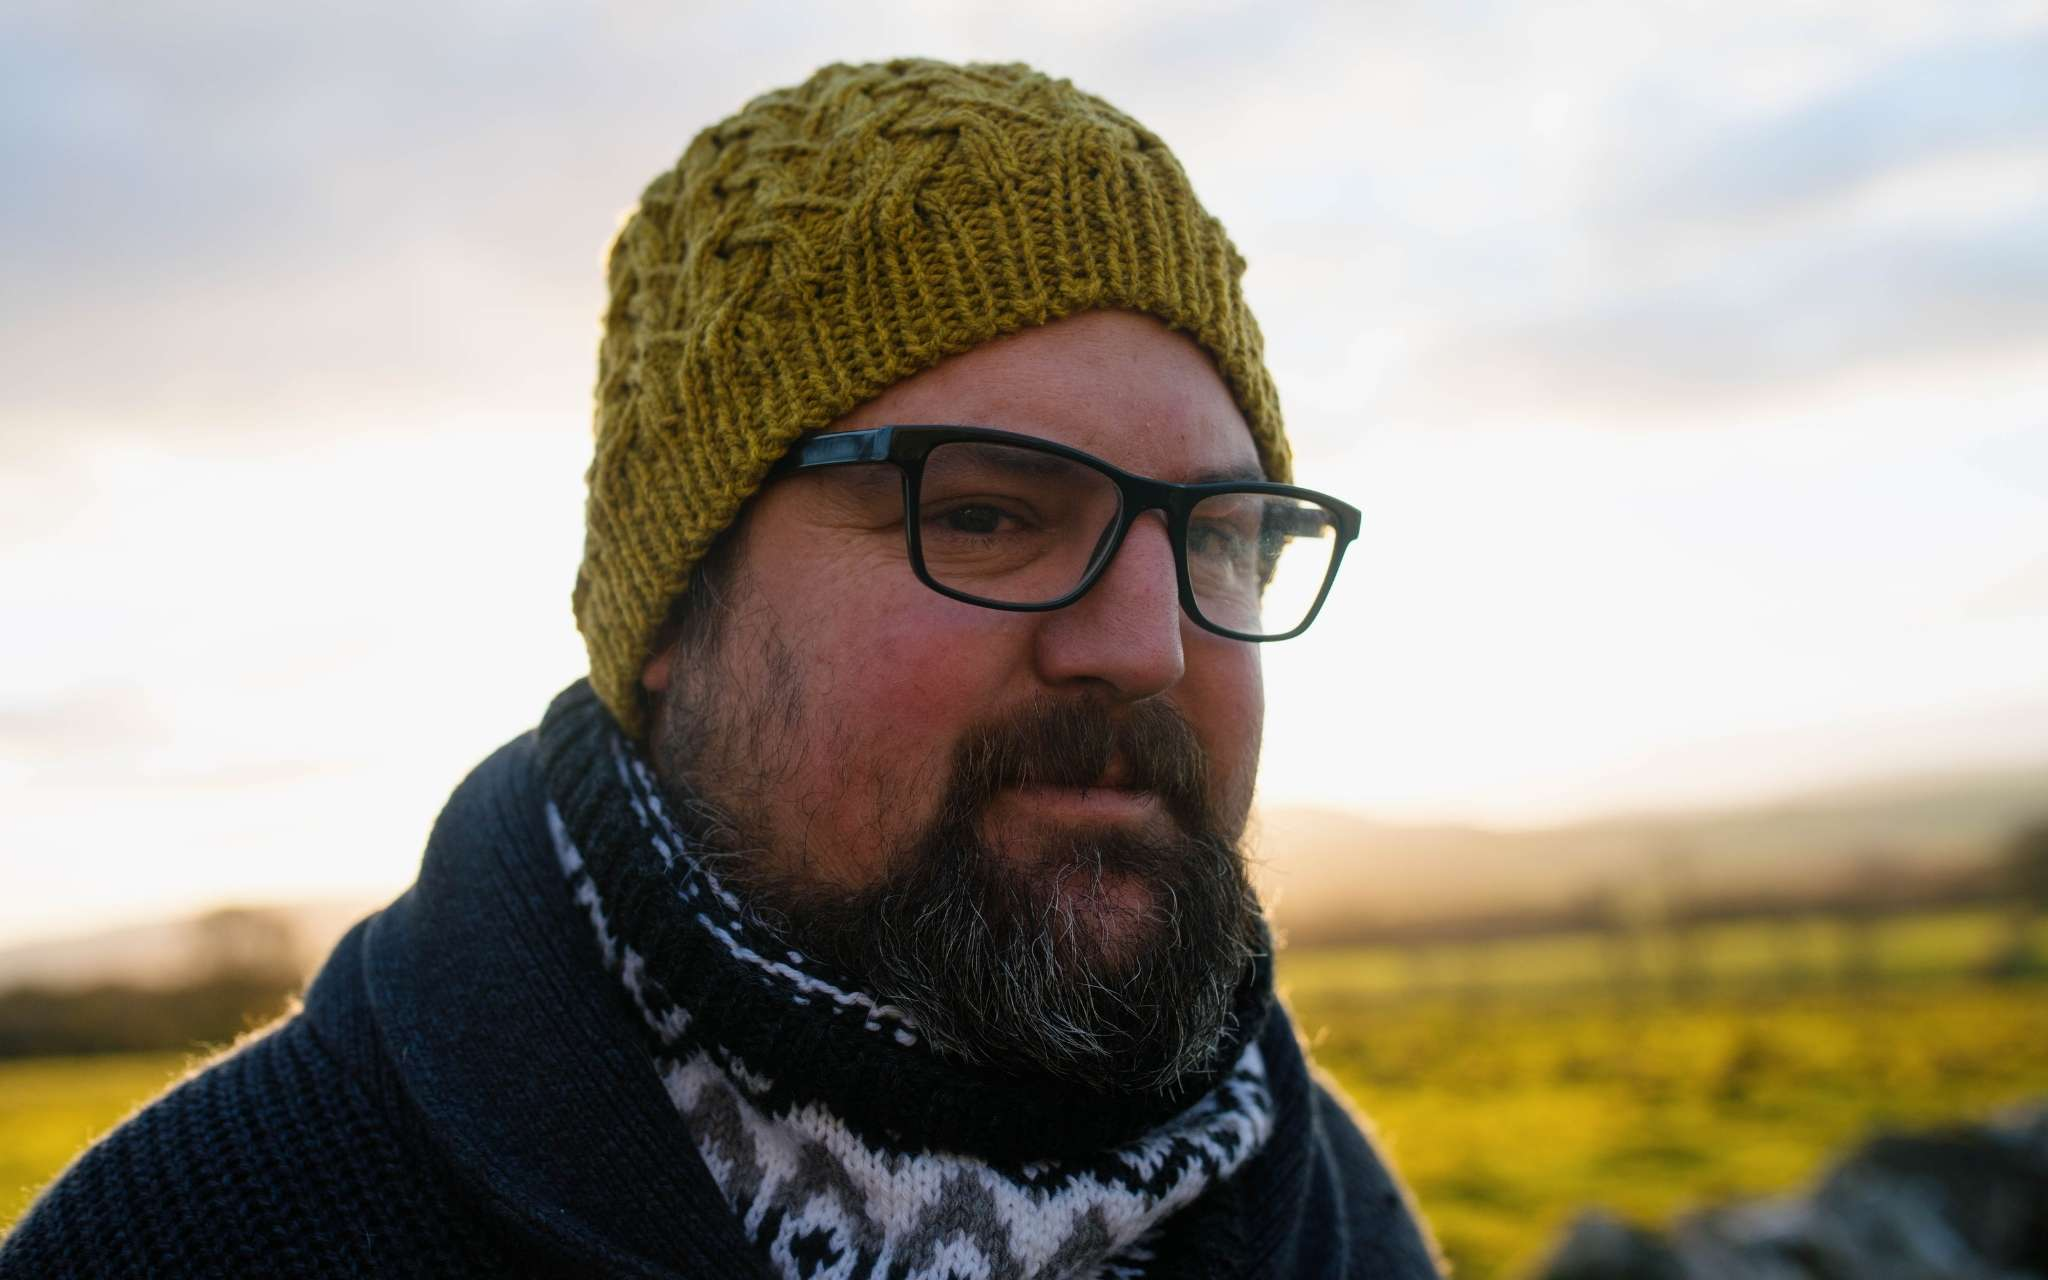 A white man with a beard and glasses stands in a rural landscape, looking to the right. He is wearing a green cabled beanie hat and colourwork cowl.